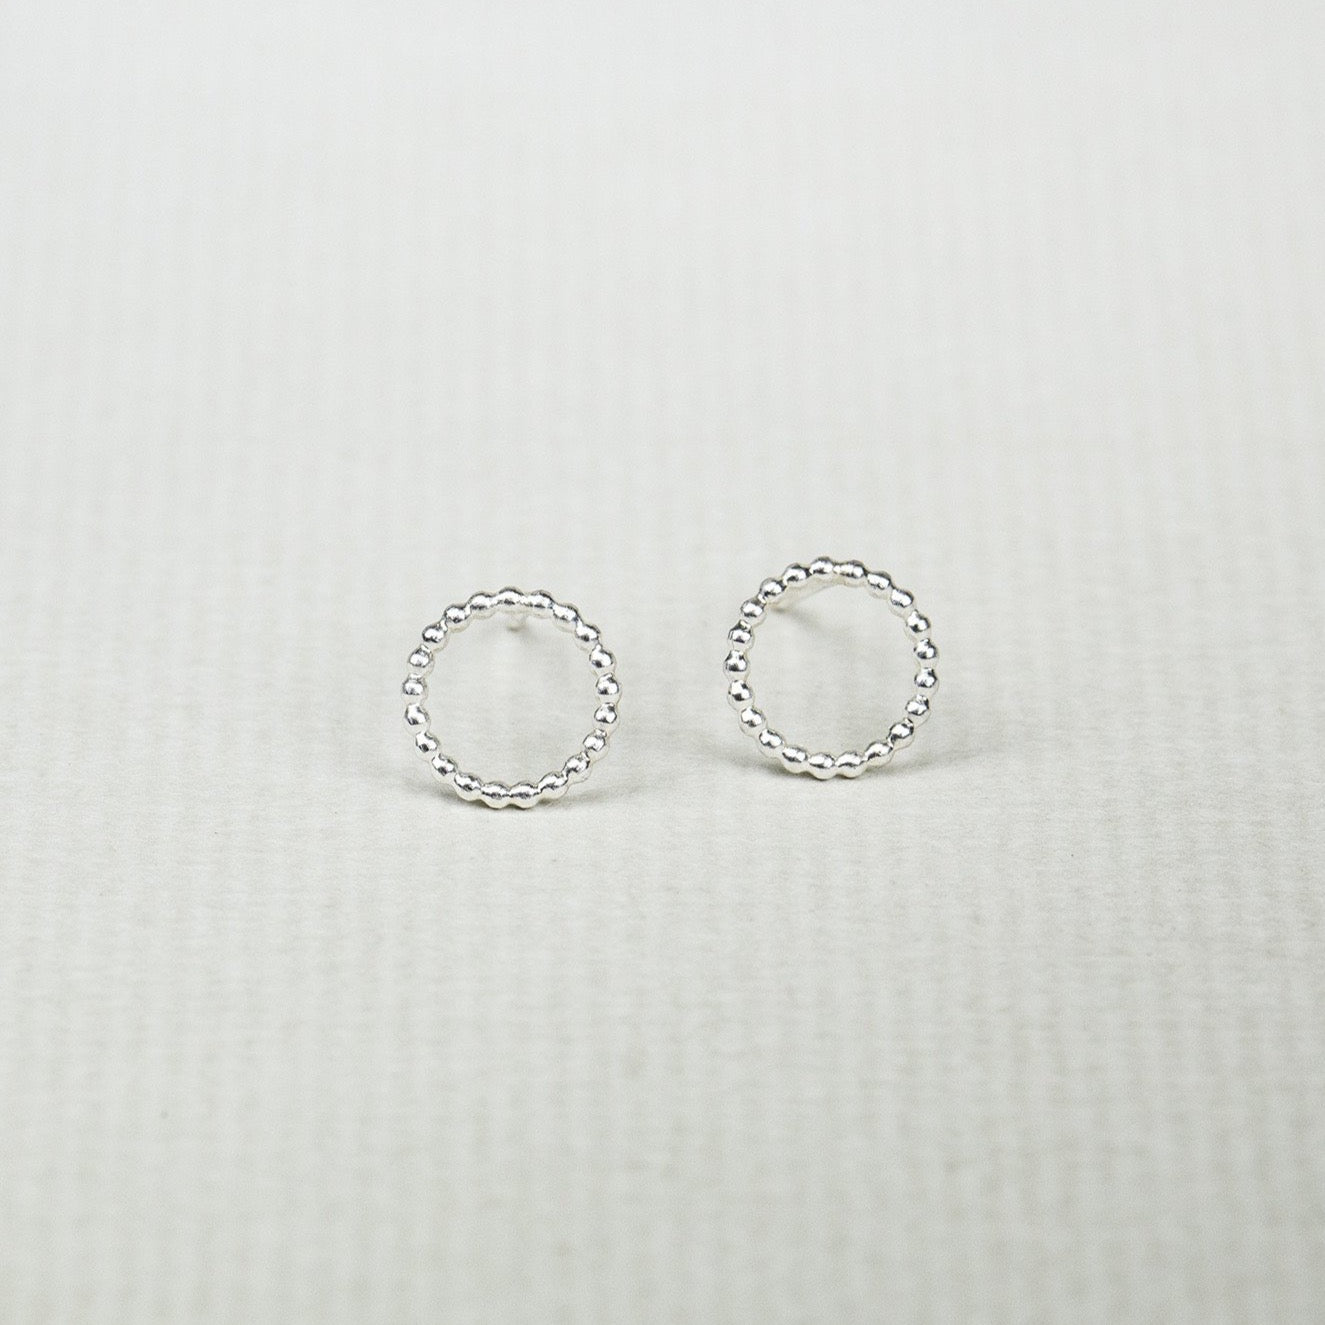 'Beaded' Circle Stud Earrings in Silver